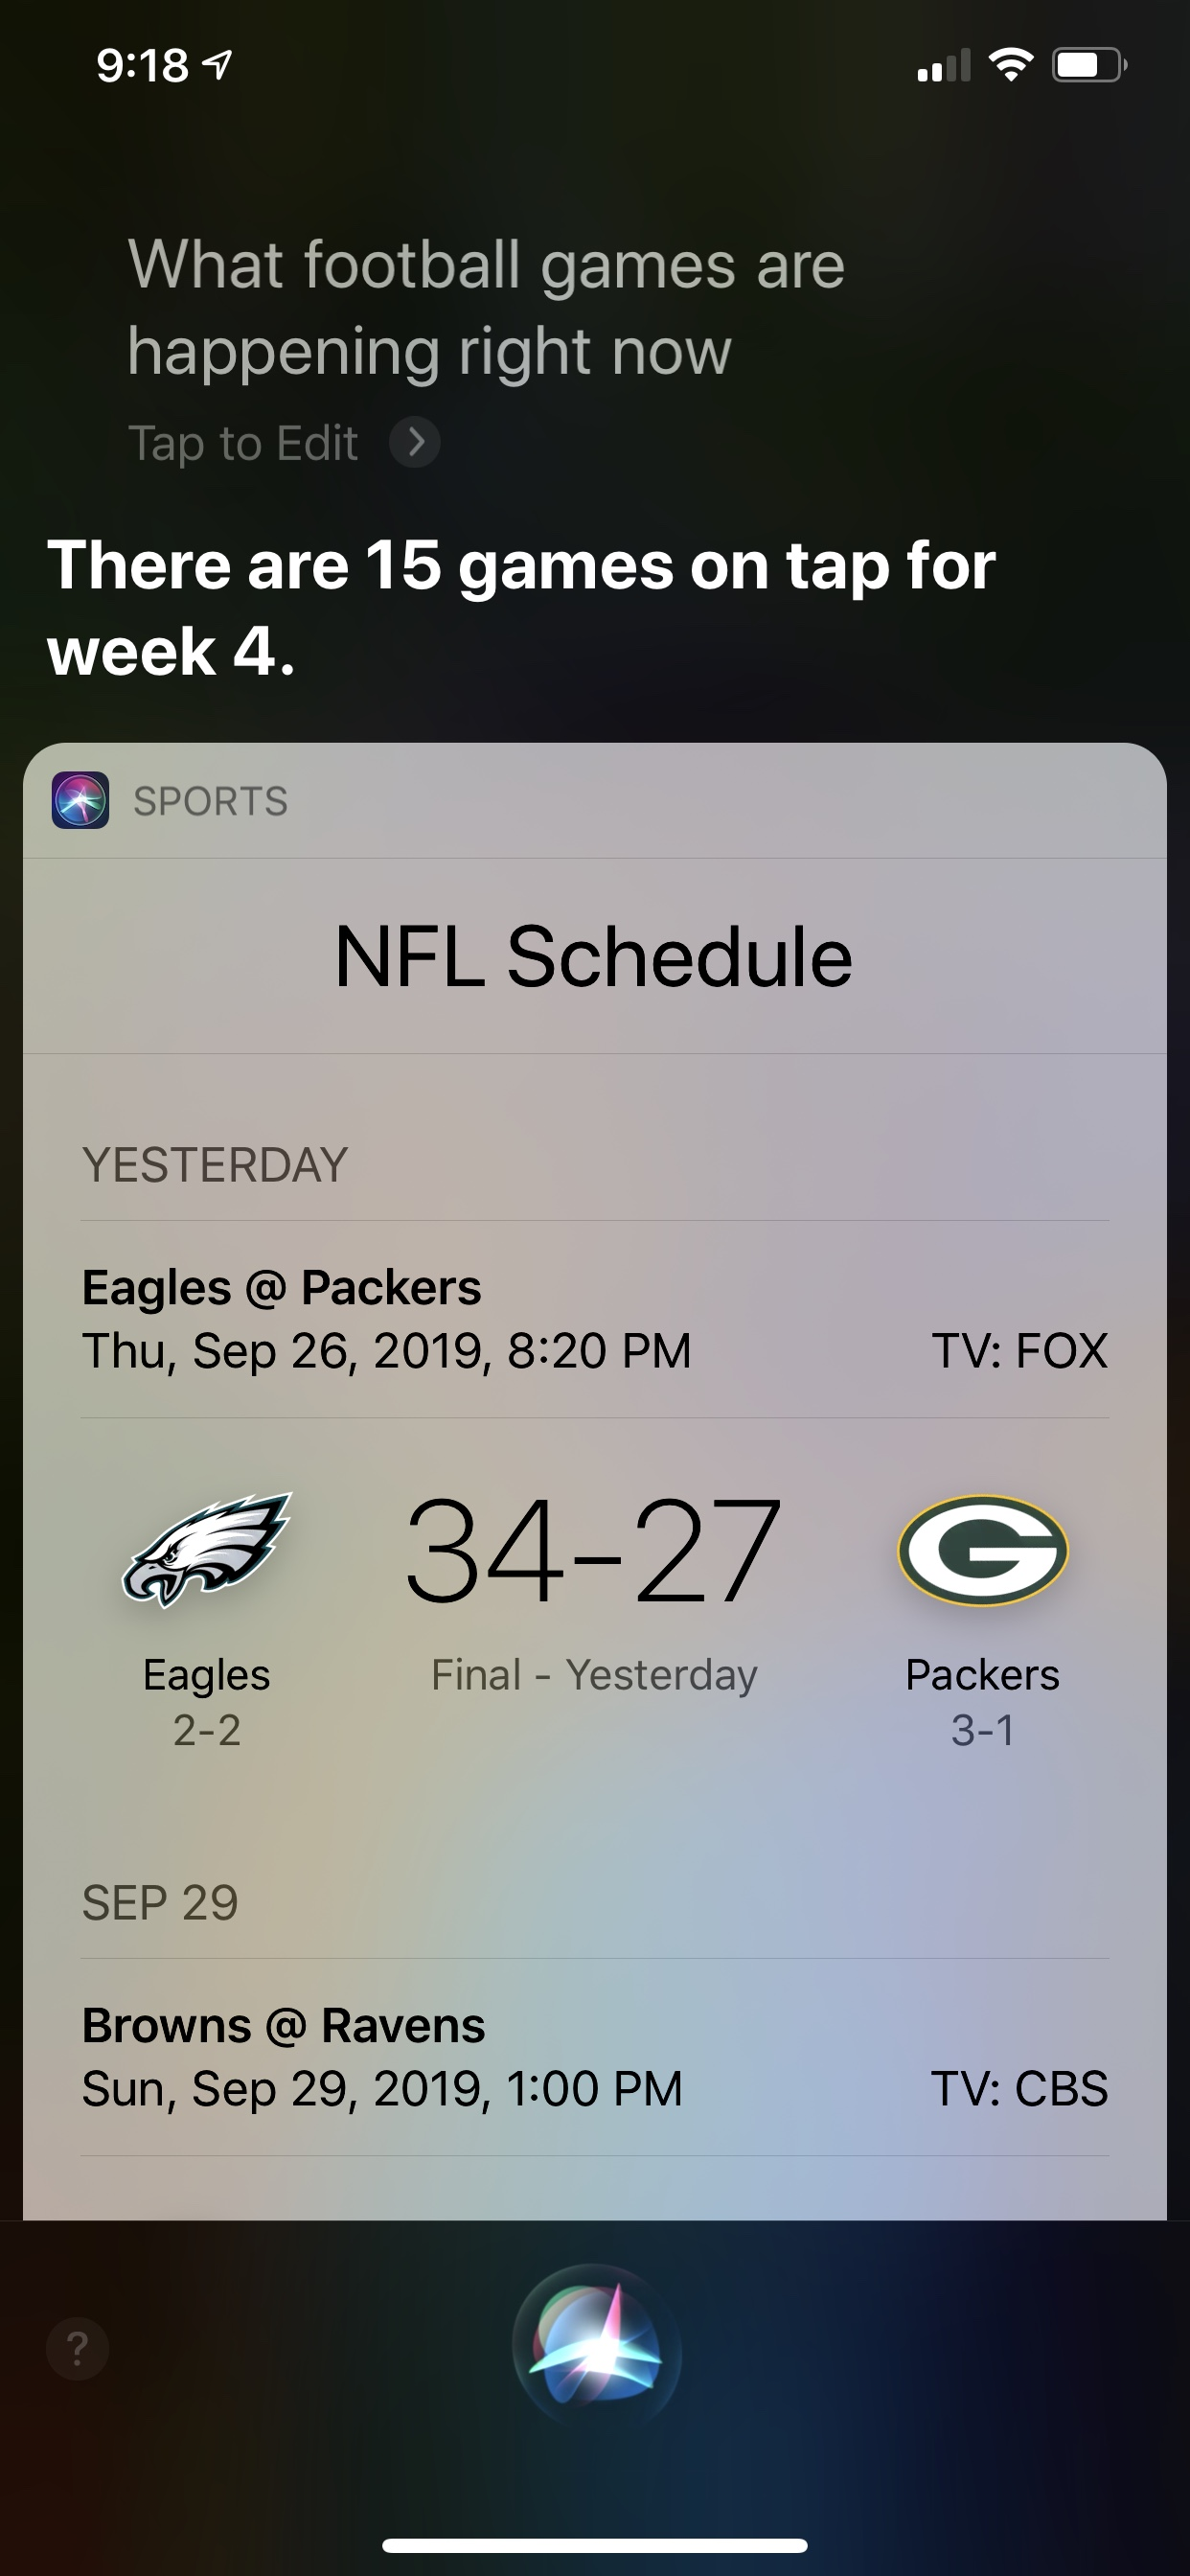 Screenshot showing Siri's response with information about the NFL schedule